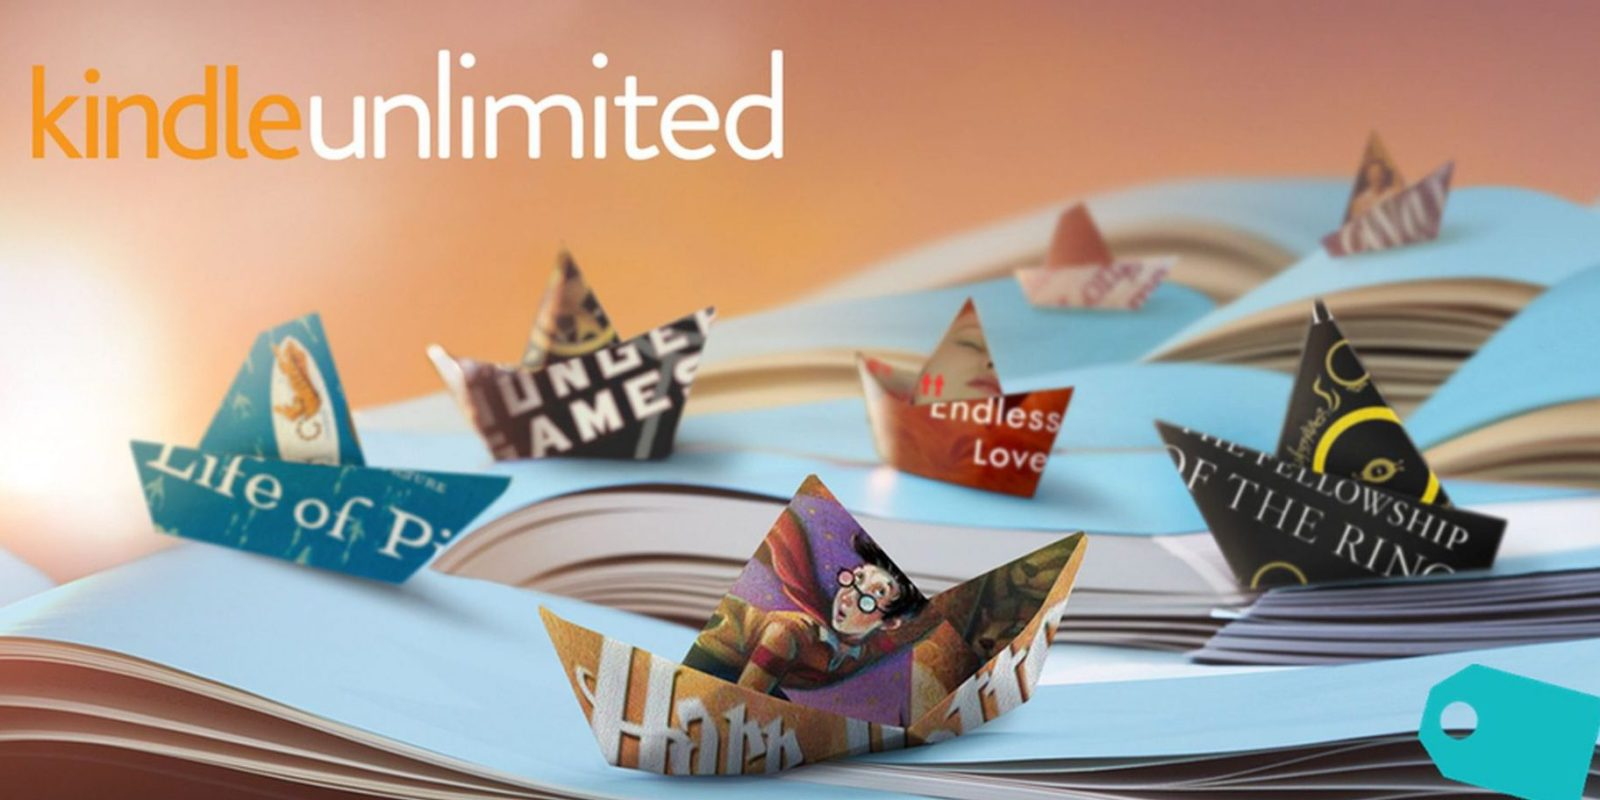 Get up to 90-days of Kindle Unlimited for FREE (Reg. $10 per month)